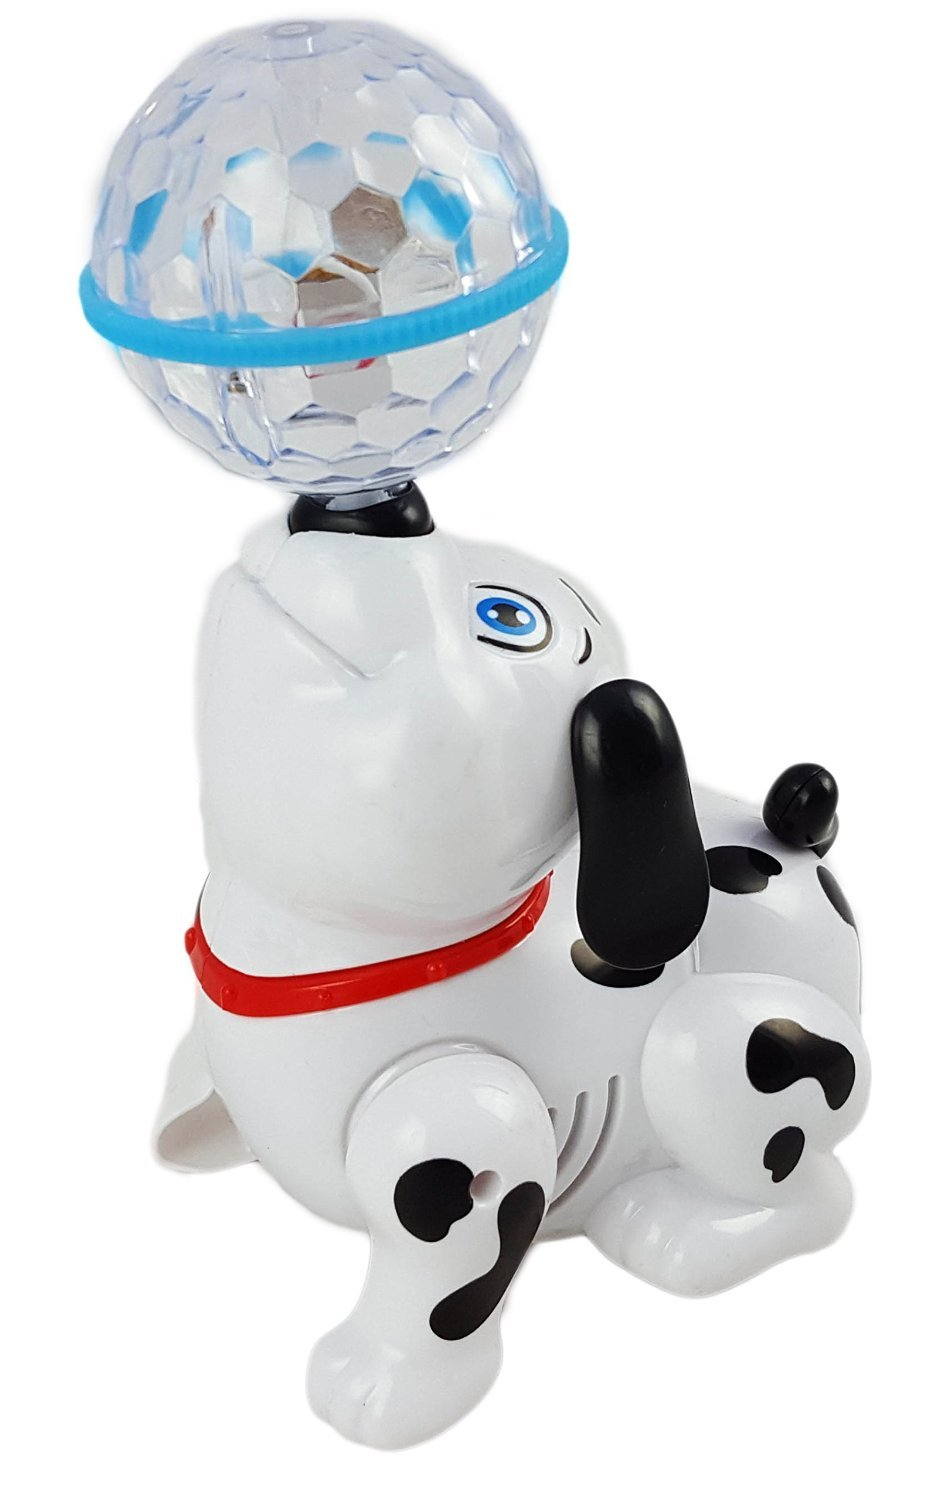 Dancing Dog Puppy Toy- Battery Operated With 3D Clear Ball Lights, and Sound by Toys N Go